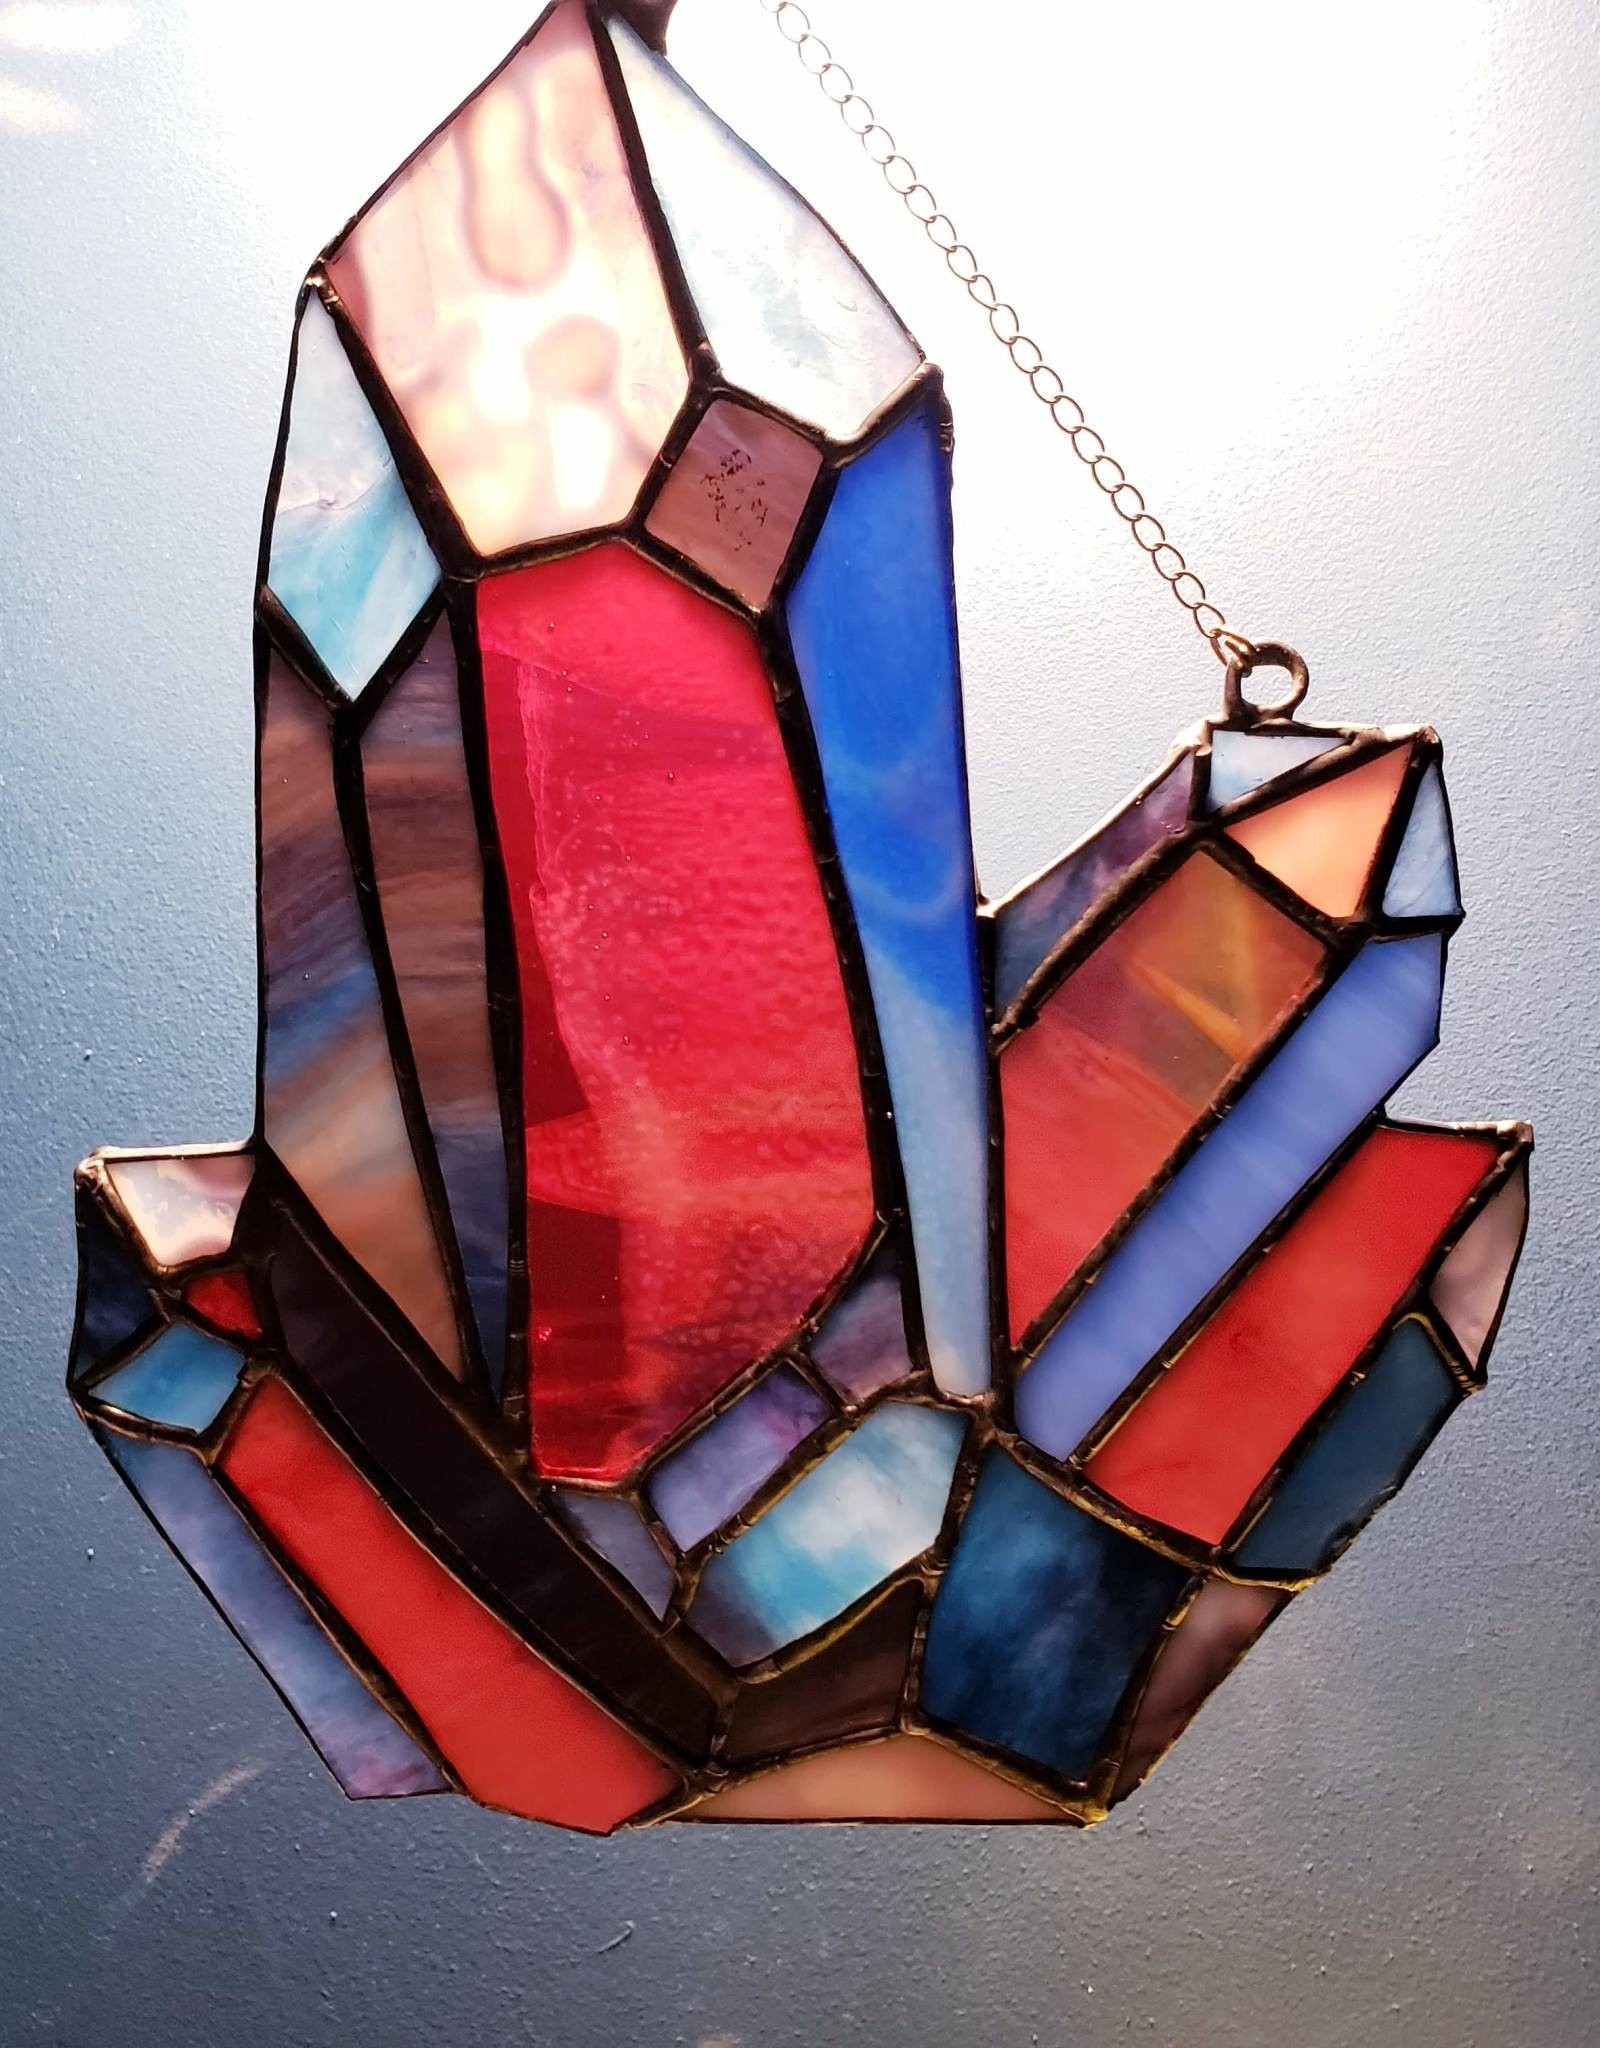 Redux Gemstone Cluster Stained Glass Window